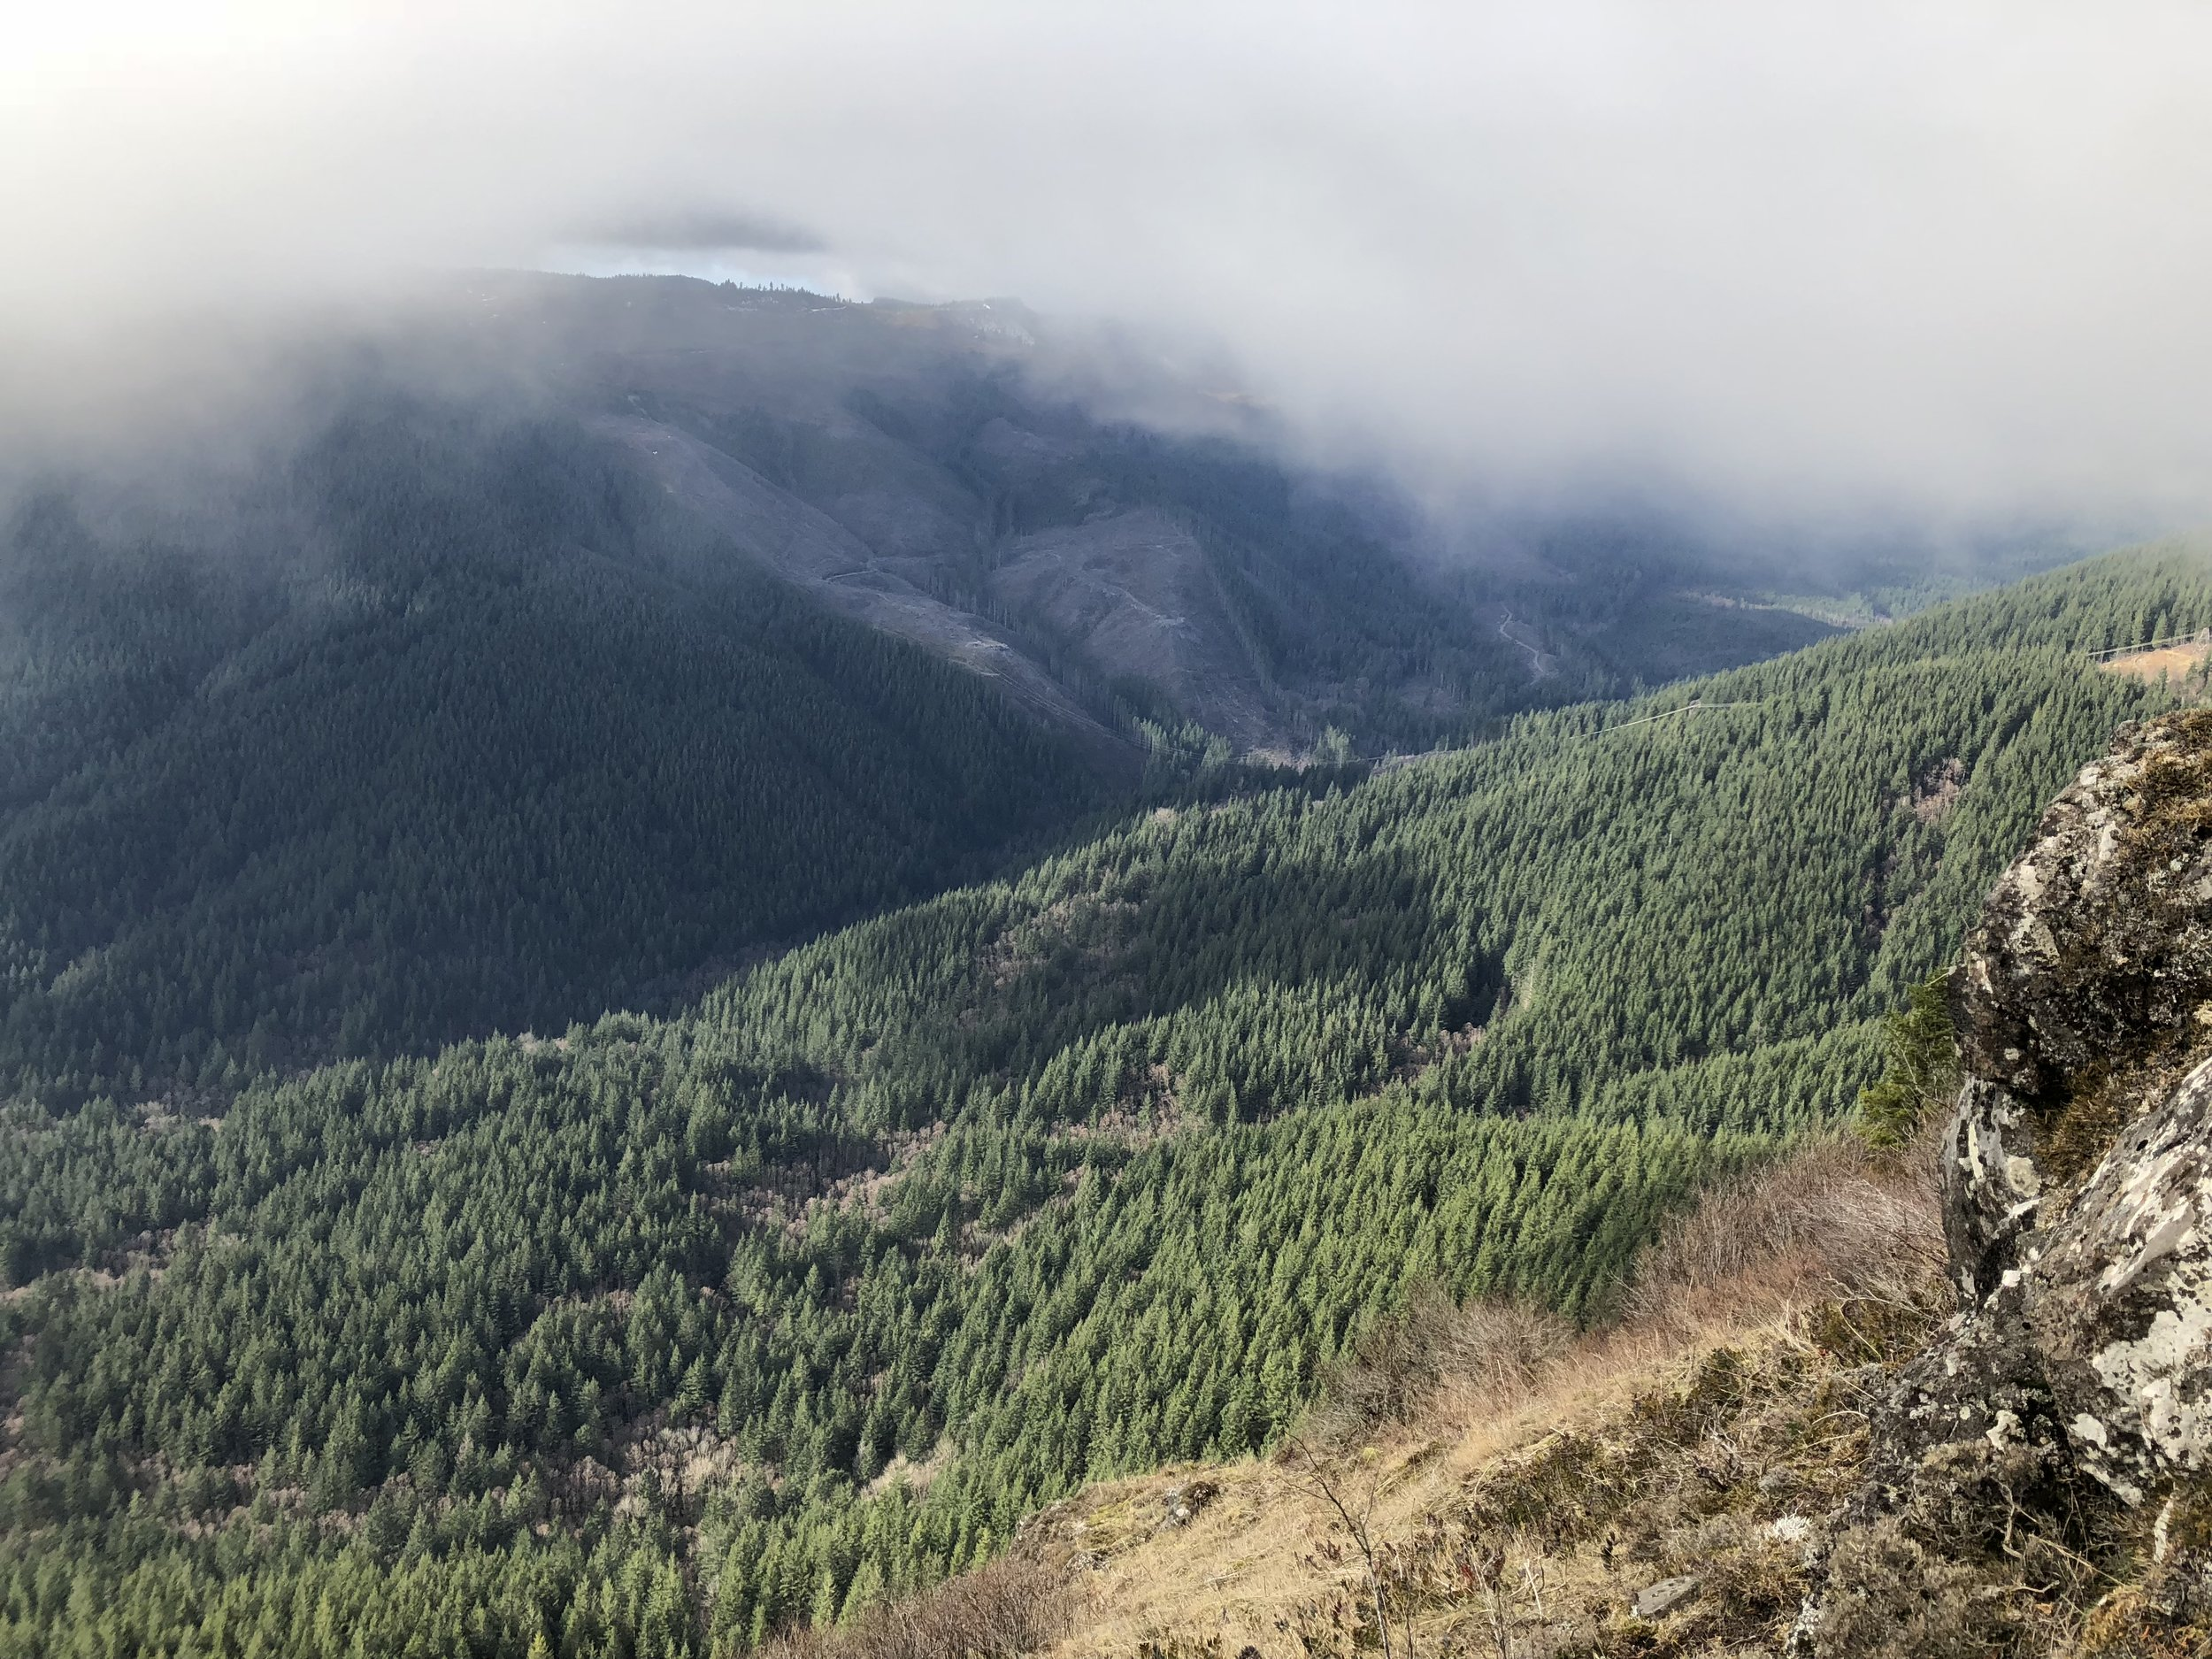 View from the descent down the west side of the loop.